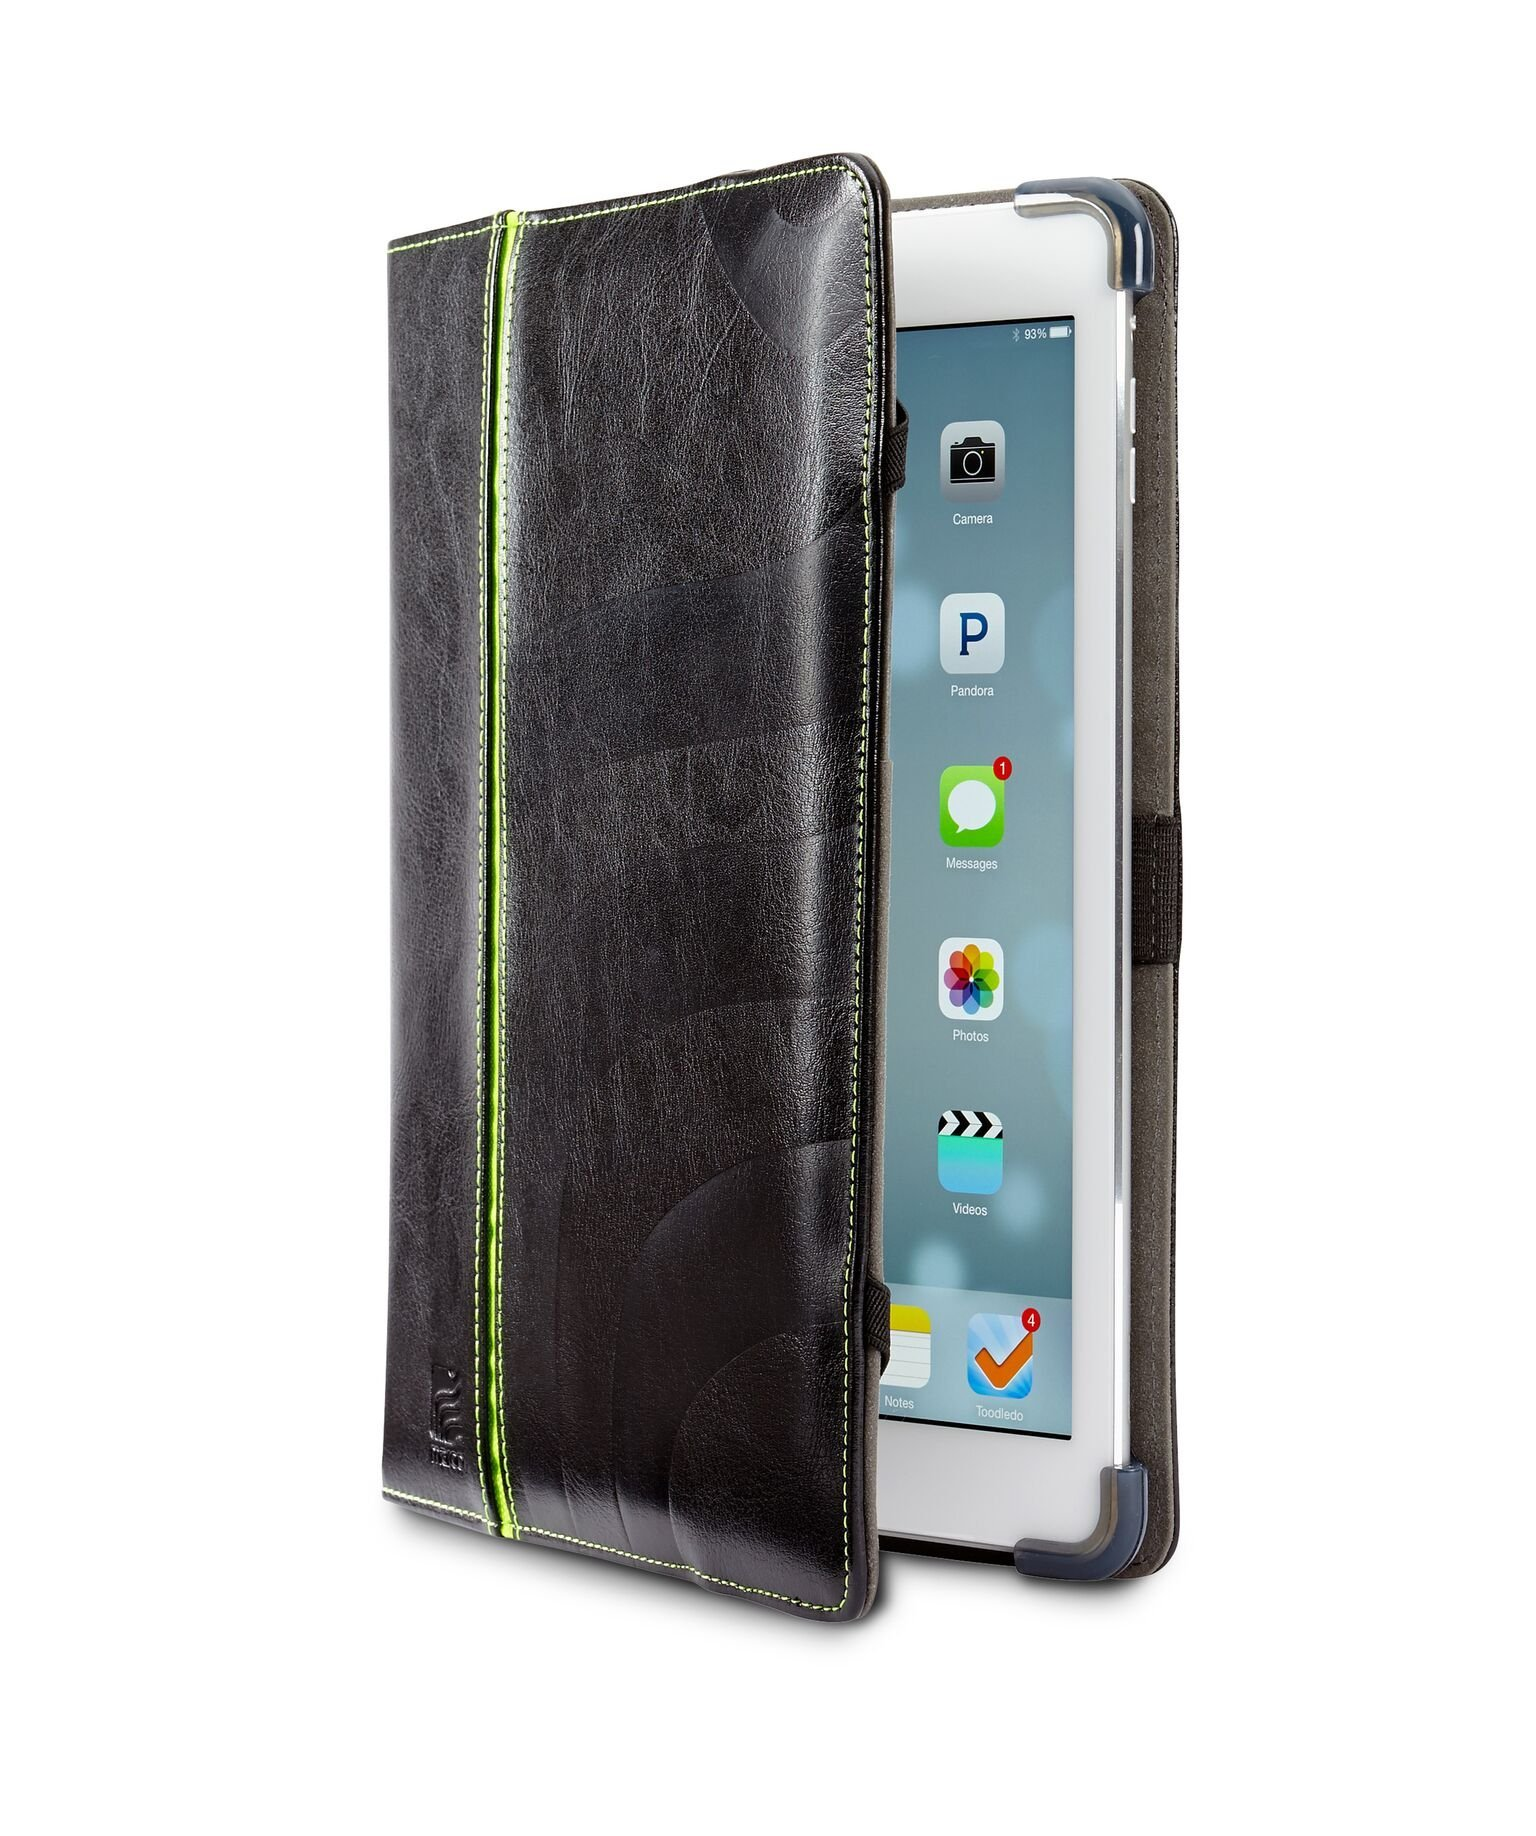 Maroo iPad Air Case - Black Leather Folio with a Maroo Green Stripe for a Professional Case with a Bright Twist, SG Bumper Technology for Ultimate Protection, Folding Front Cover for Viewing and Typing Angles